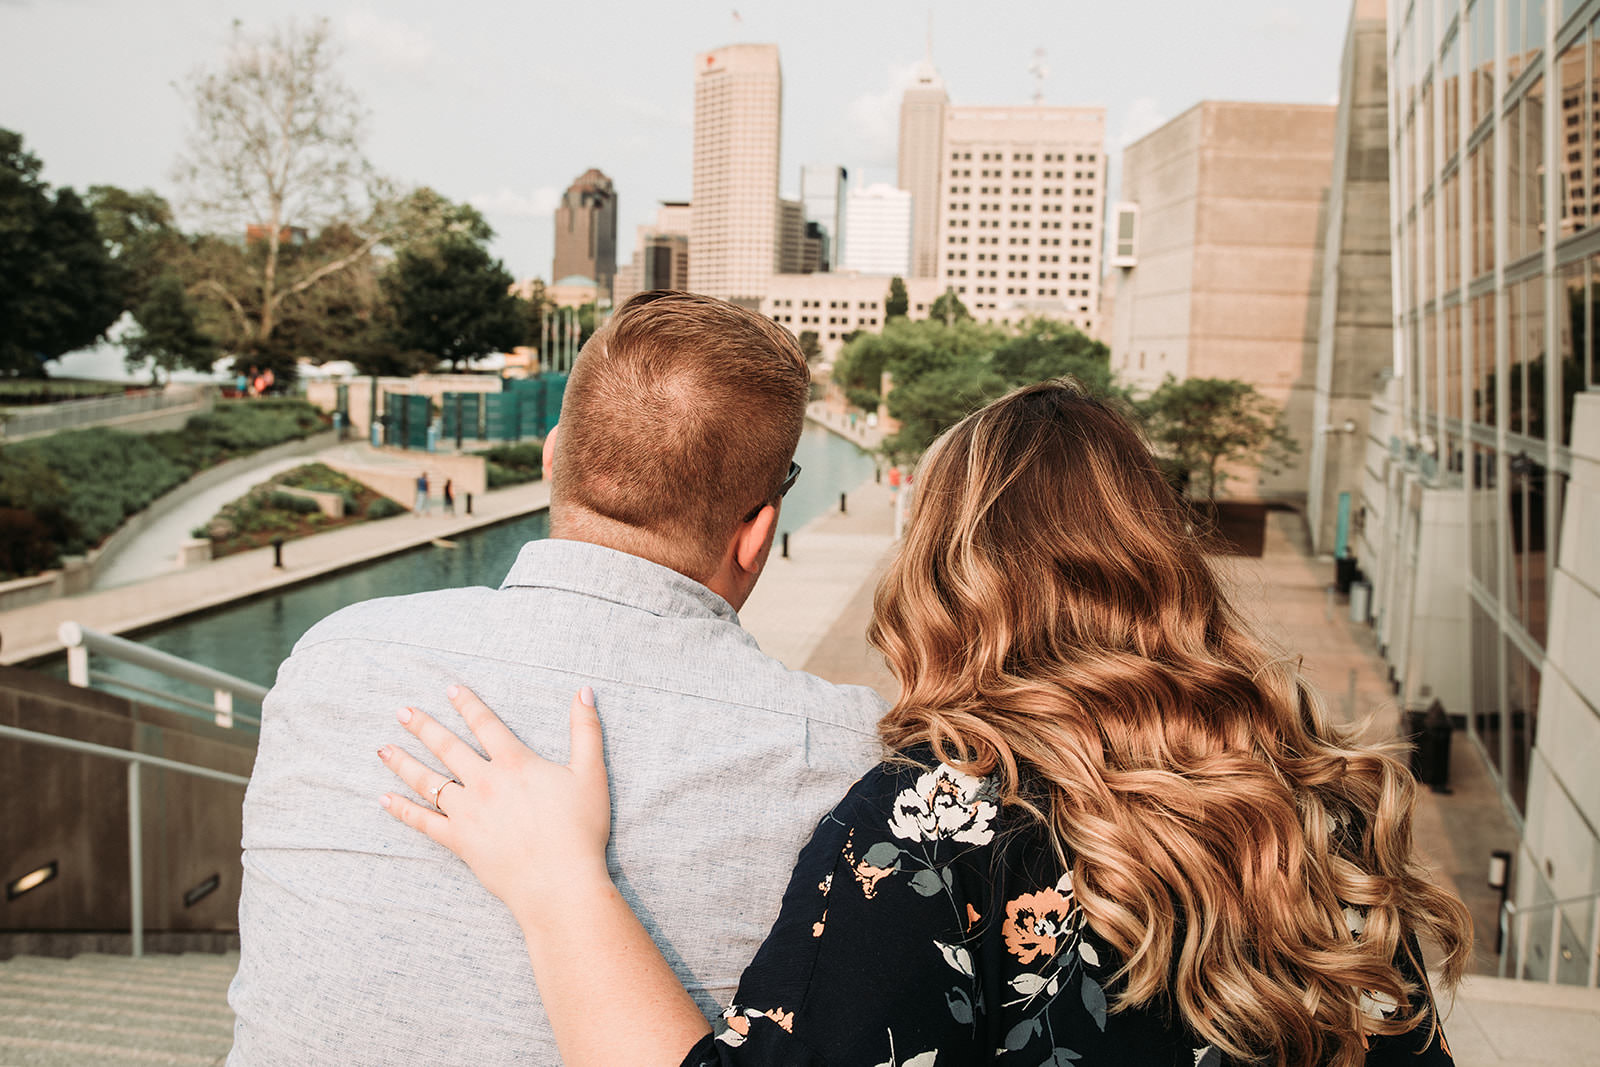 DowntownIndianapolisSpringEngagementPhotos-47.jpg